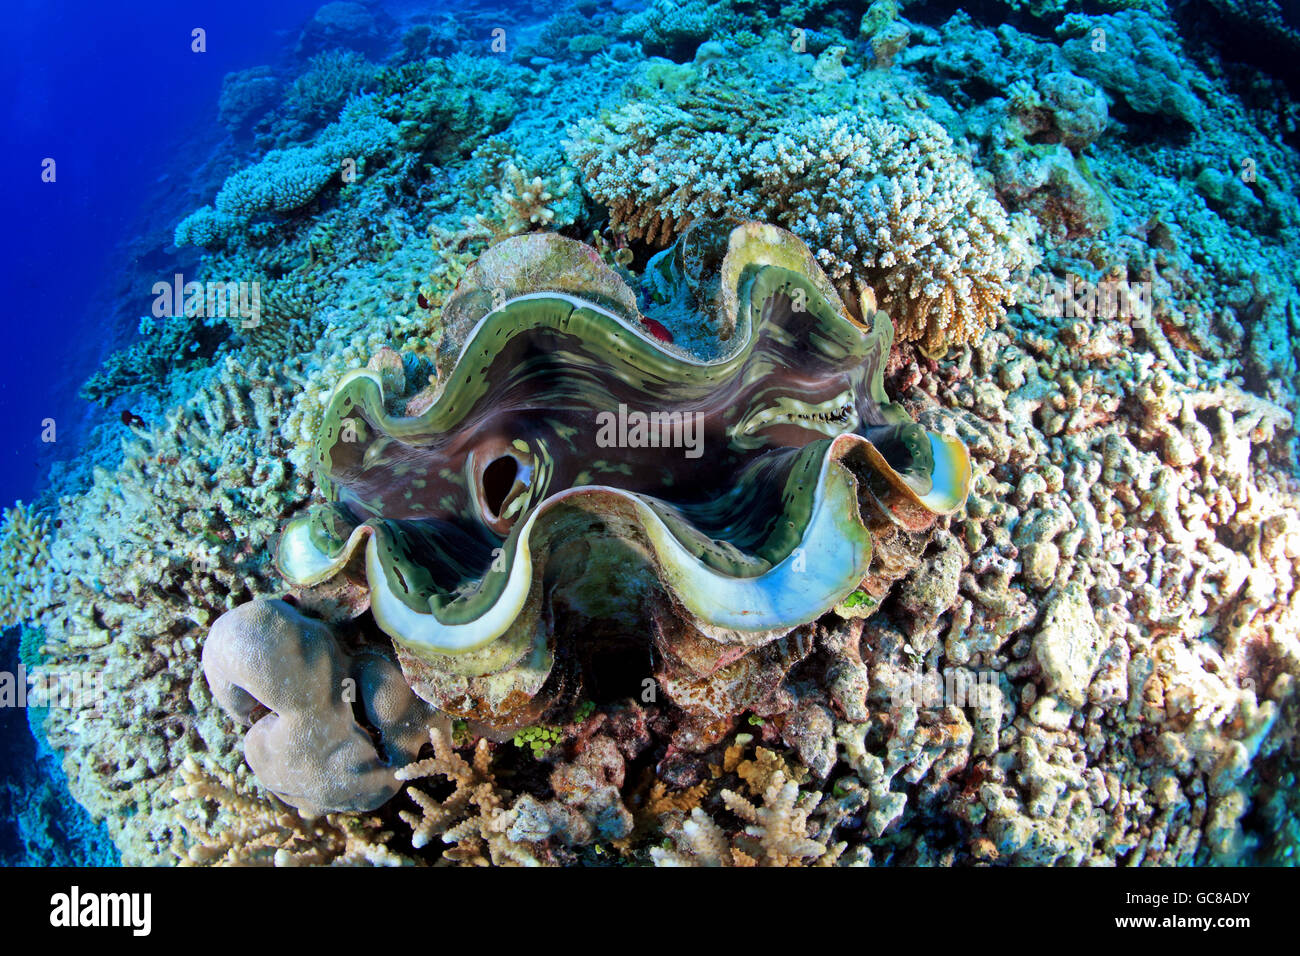 Squamosa clam in the tropical coral reef - Stock Image